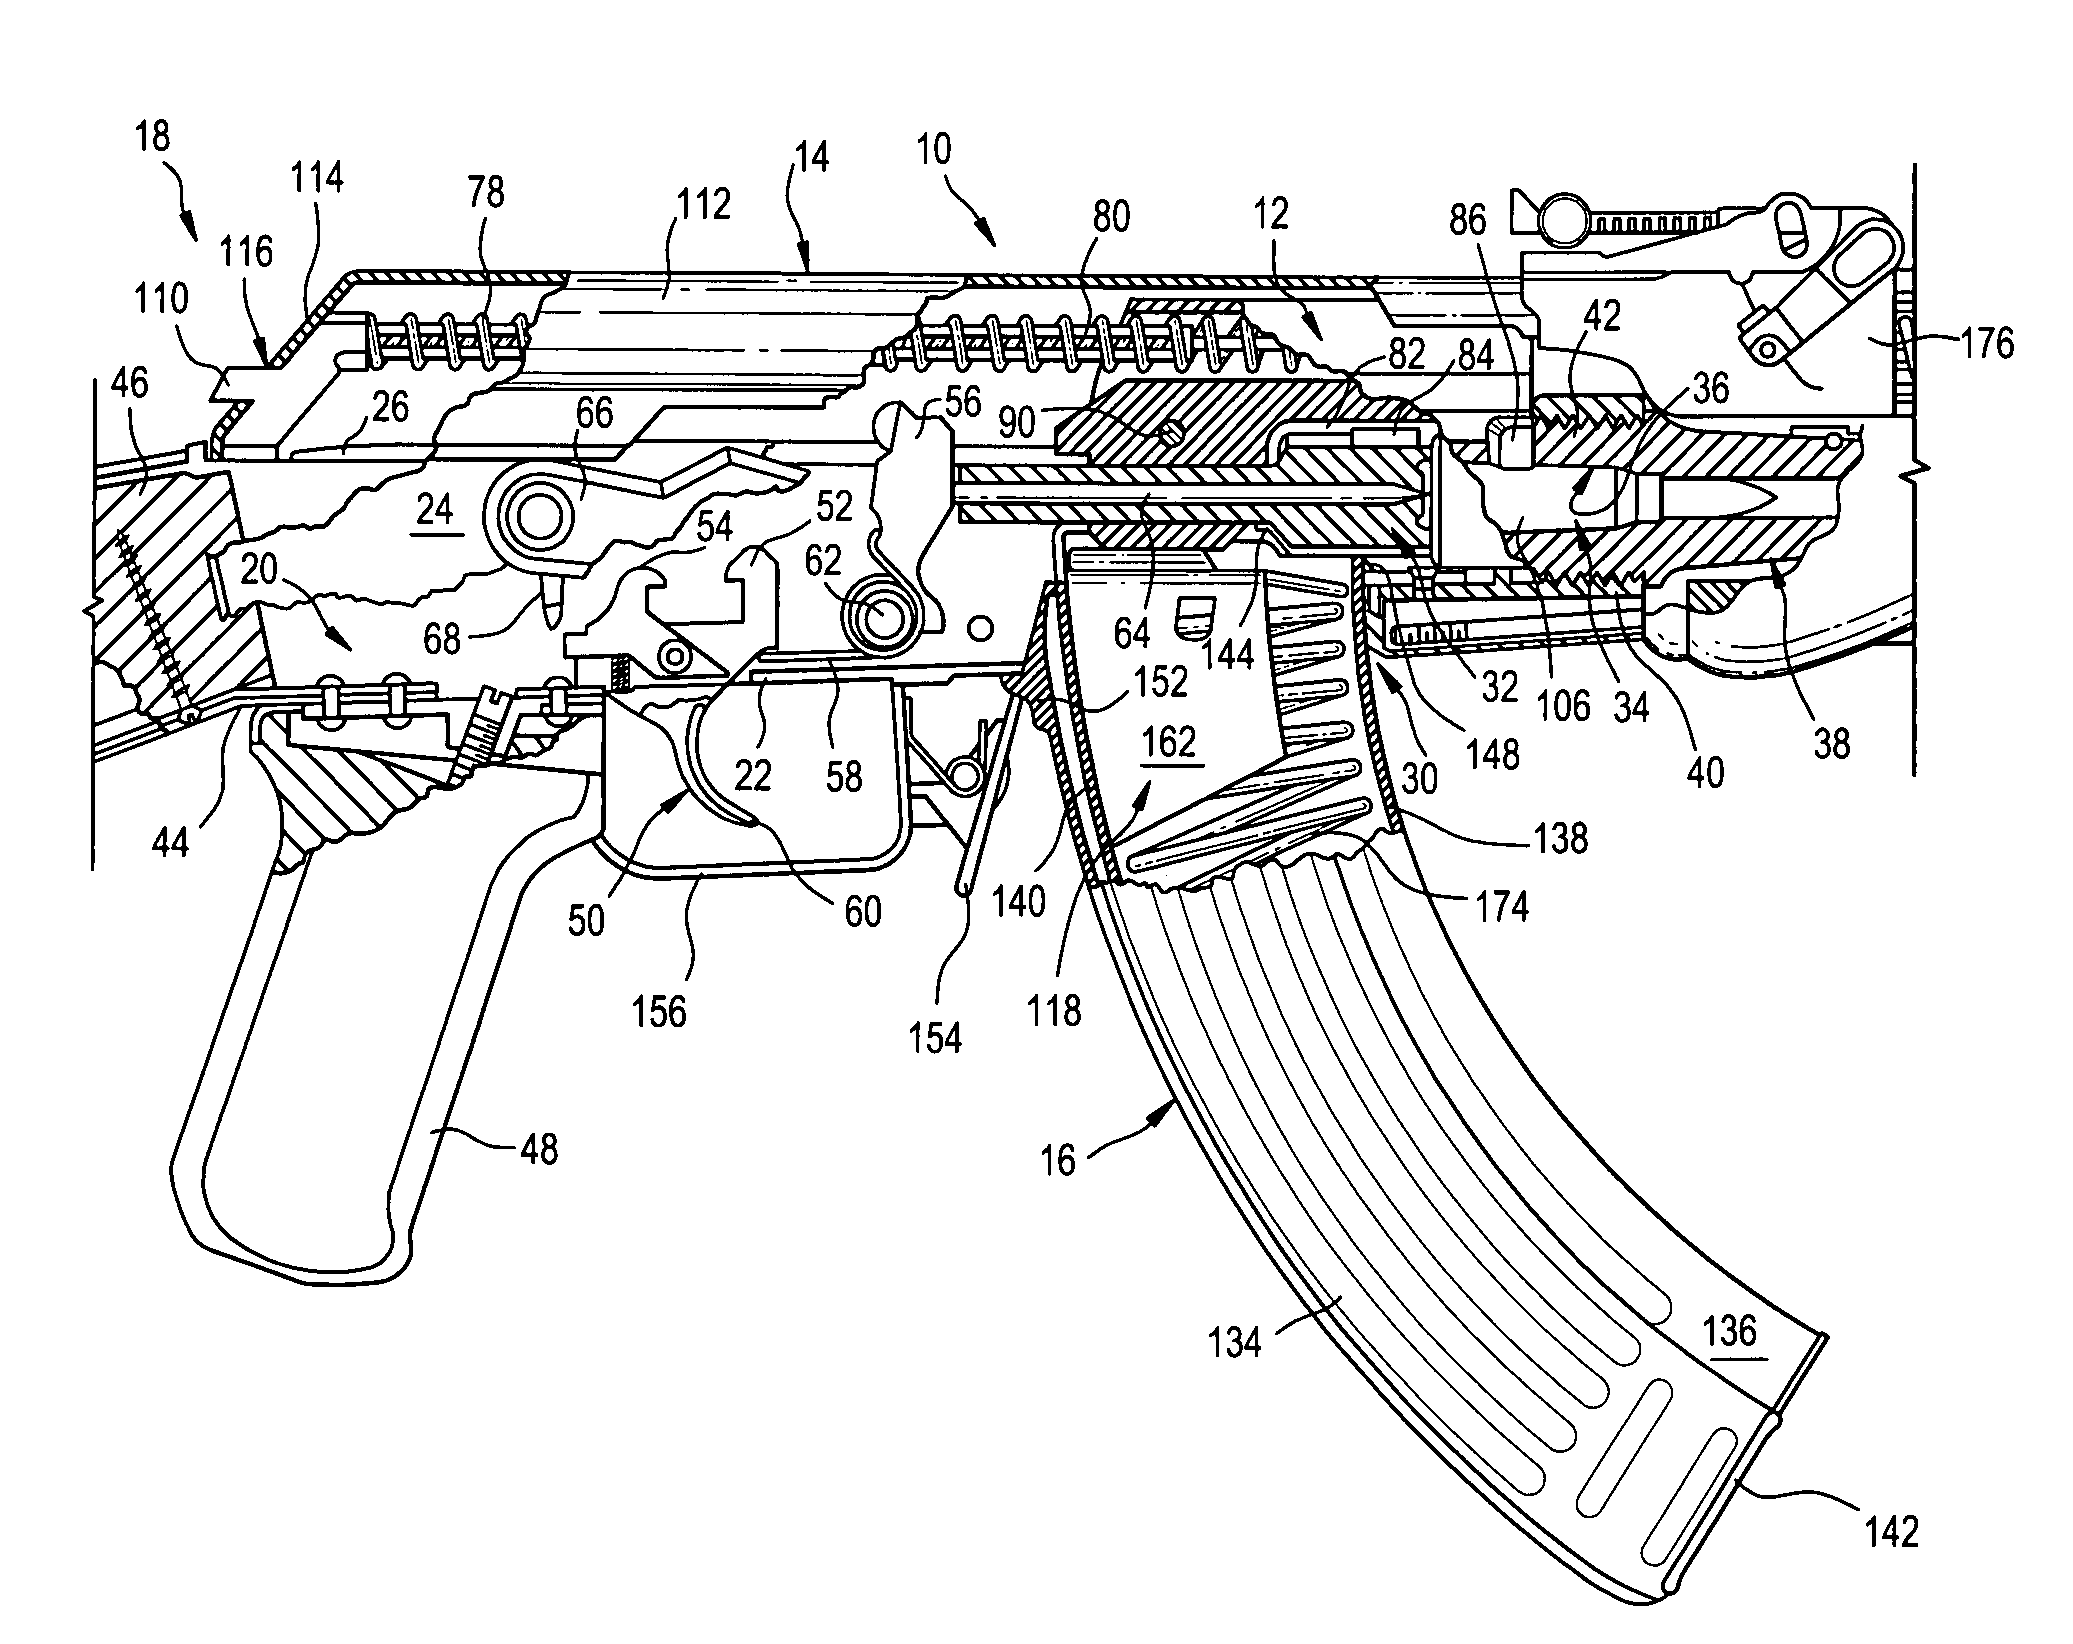 ar 15 exploded view pdf download bing images [ 2073 x 1644 Pixel ]